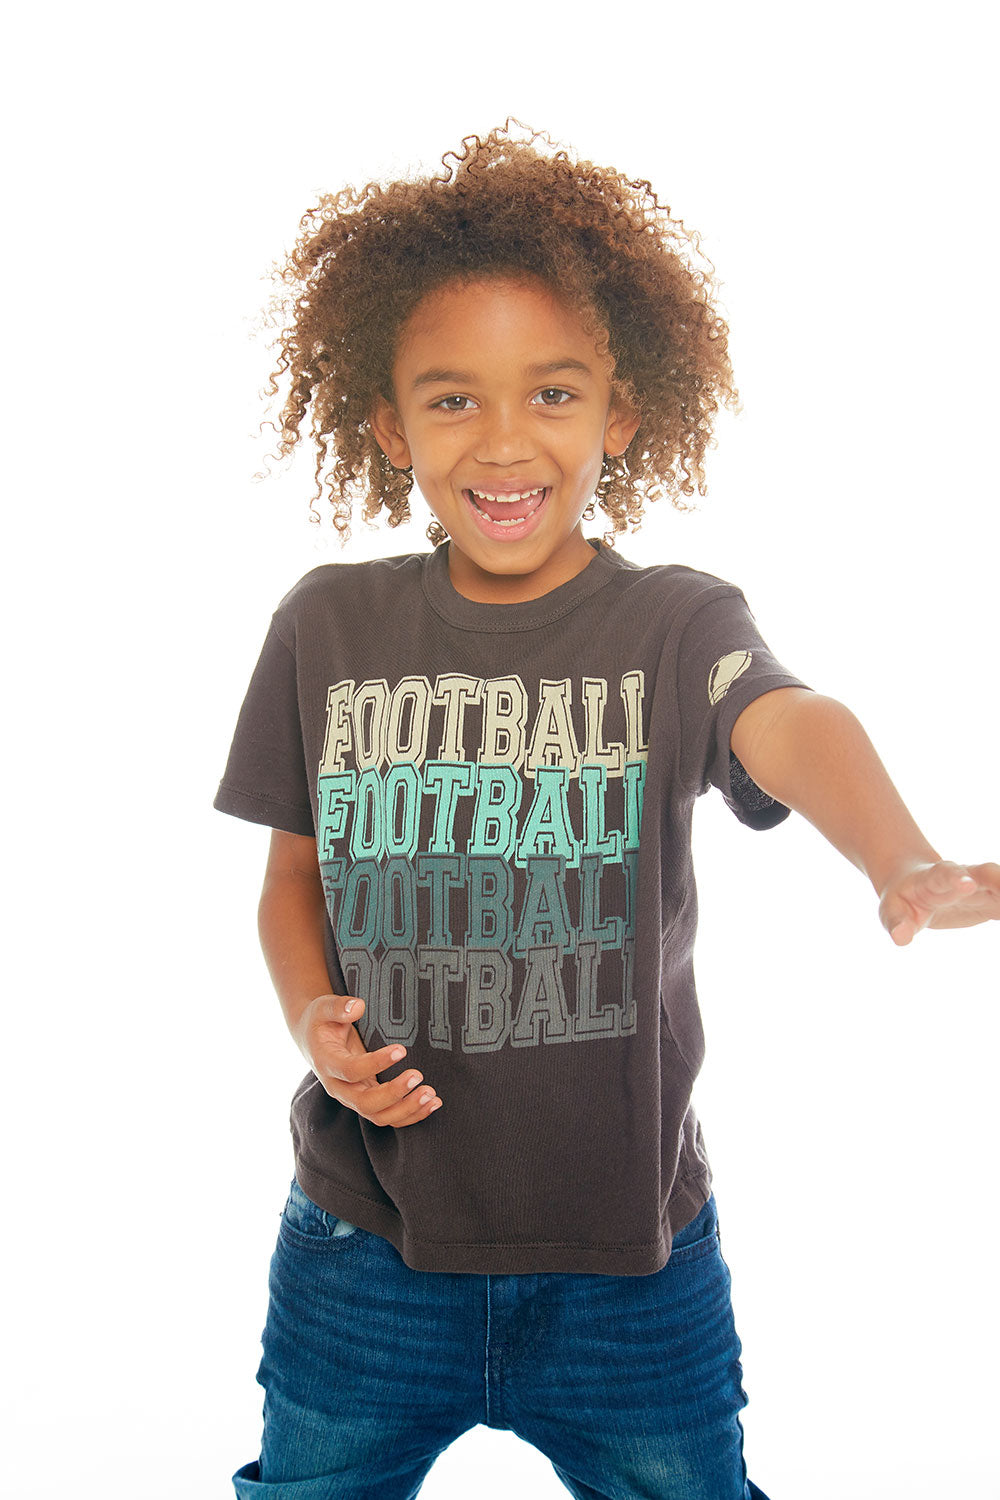 Football, BOYS, chaserbrand.com,chaser clothing,chaser apparel,chaser los angeles